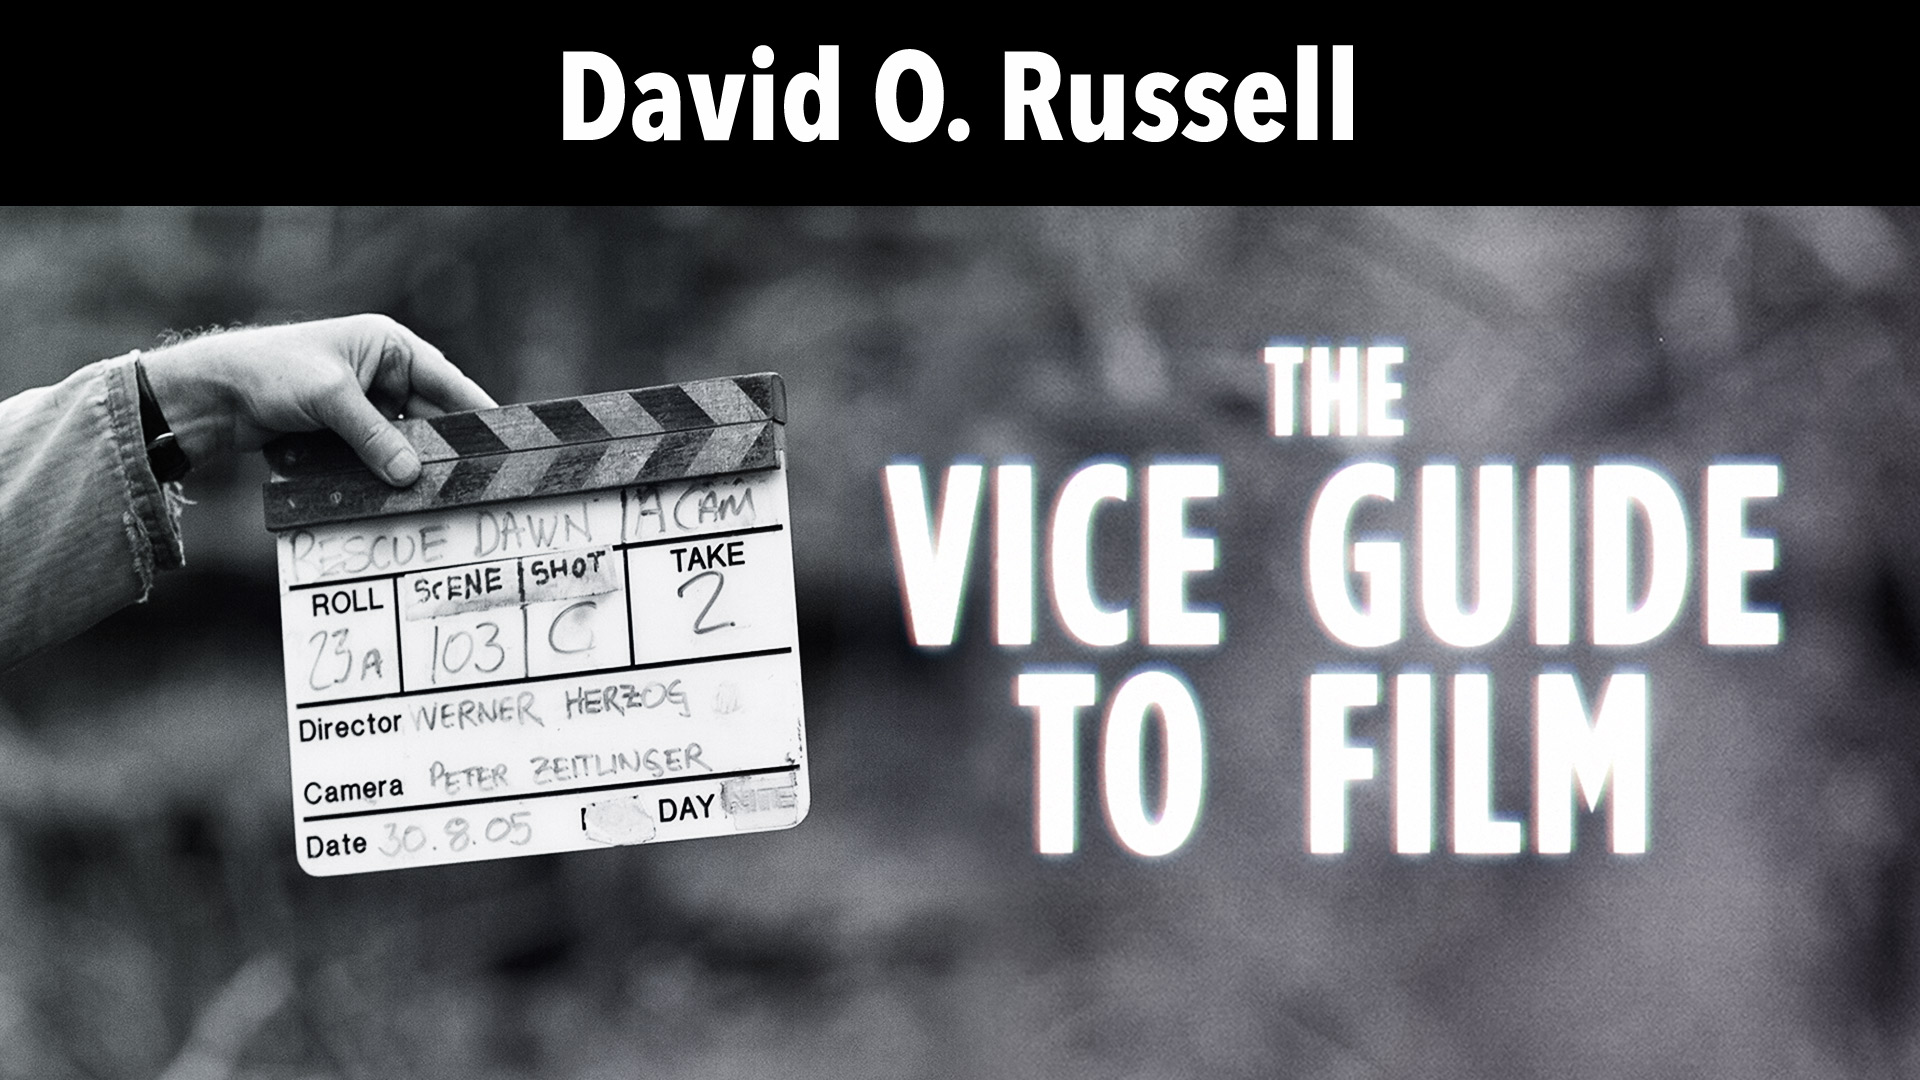 David O. Russell: Vice Guide To Film